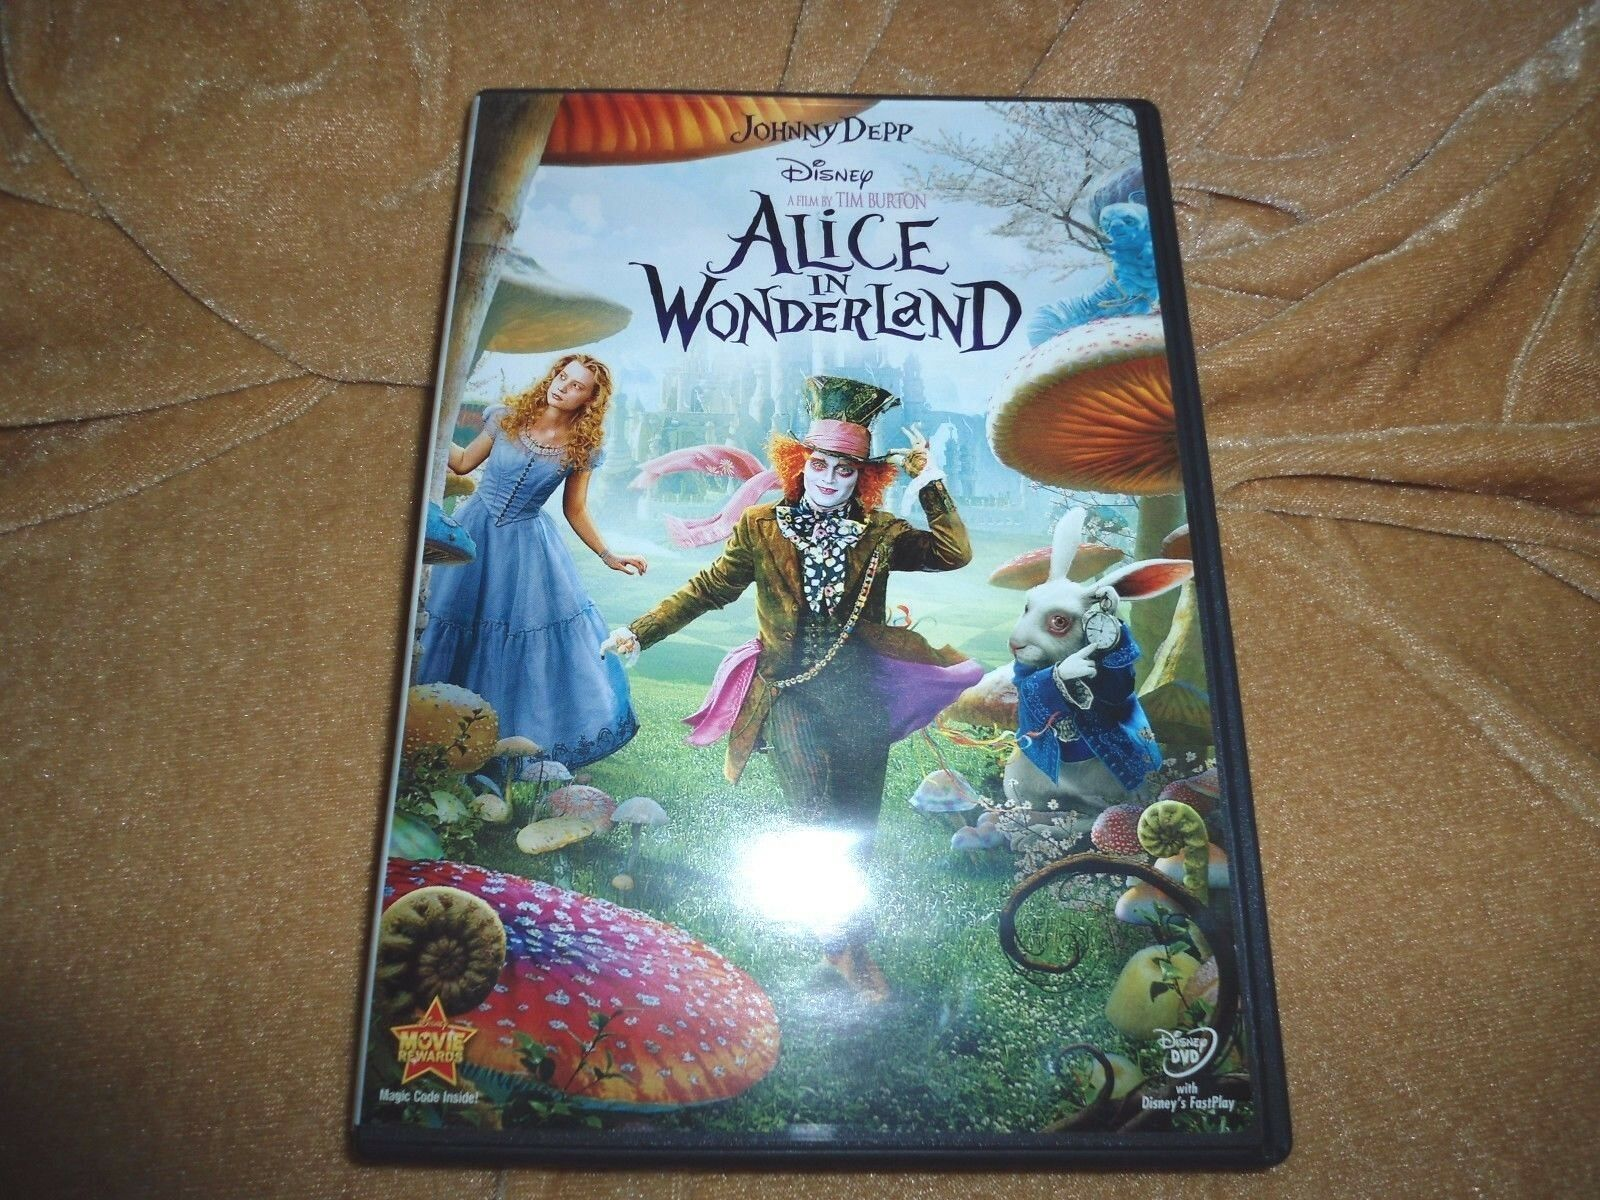 Alice In Wonderland 2010 1 Disc DVD  - $9.99